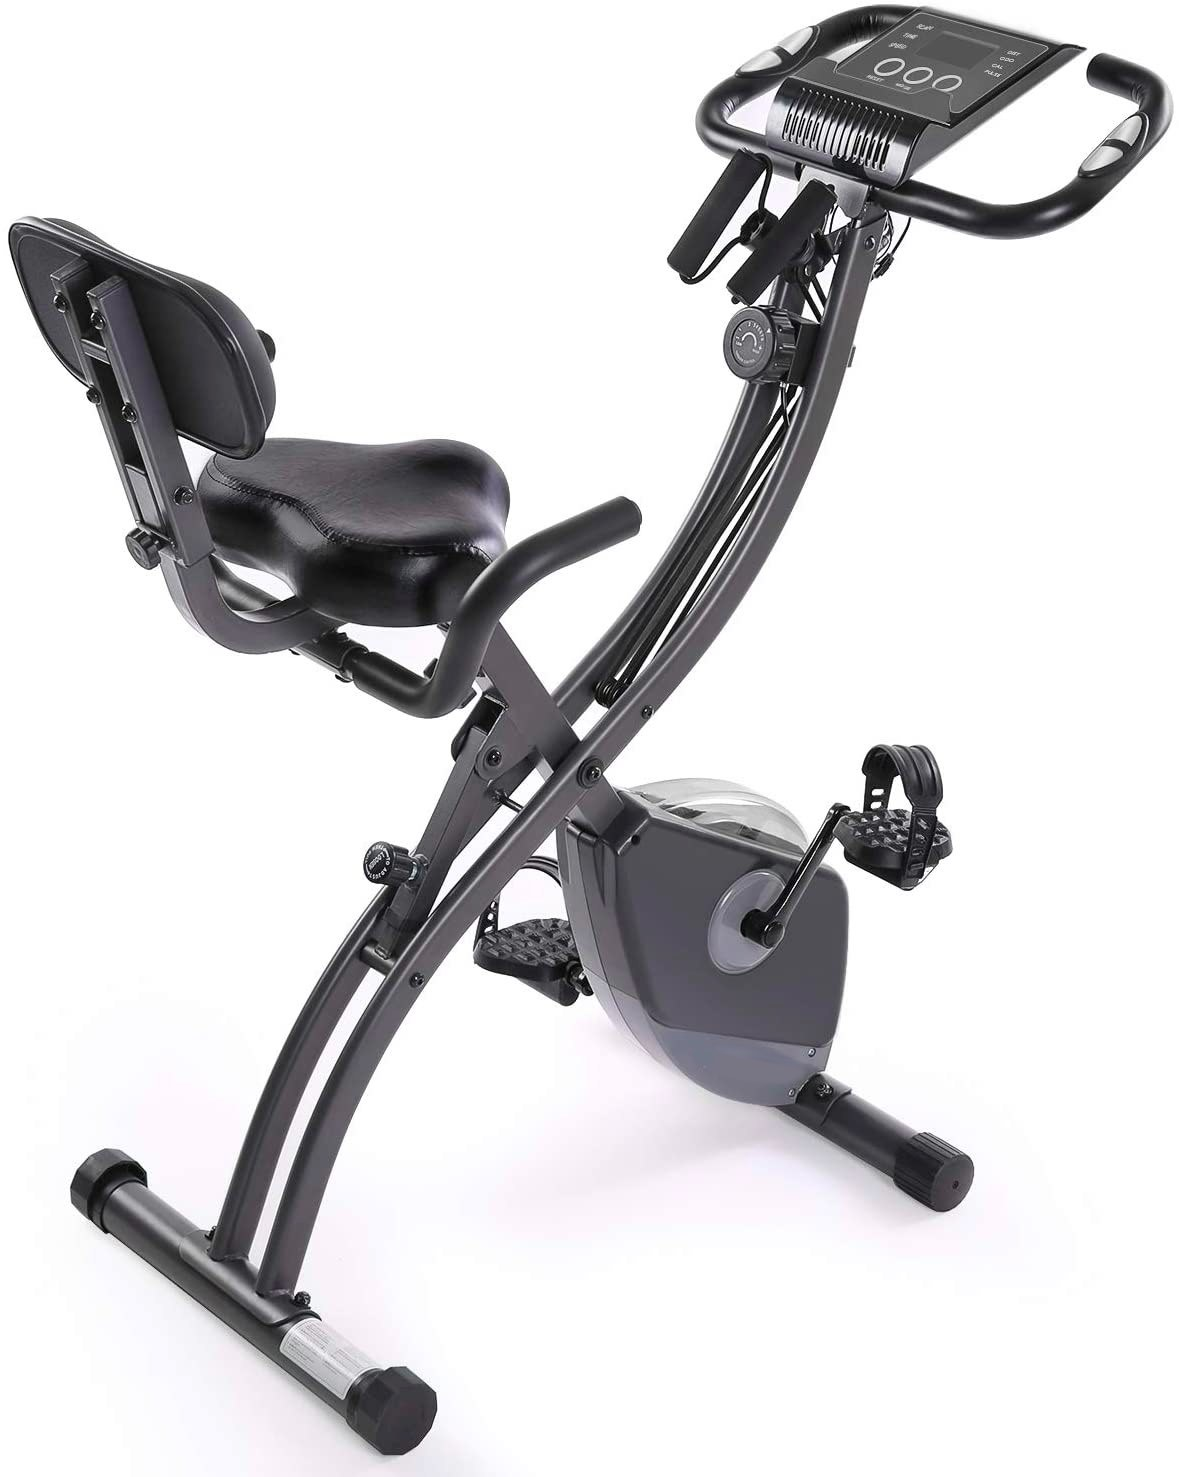 Folding Foldable Exercise Bike Bicycle For Indoor Home Gym Fitness Cycle Pedal